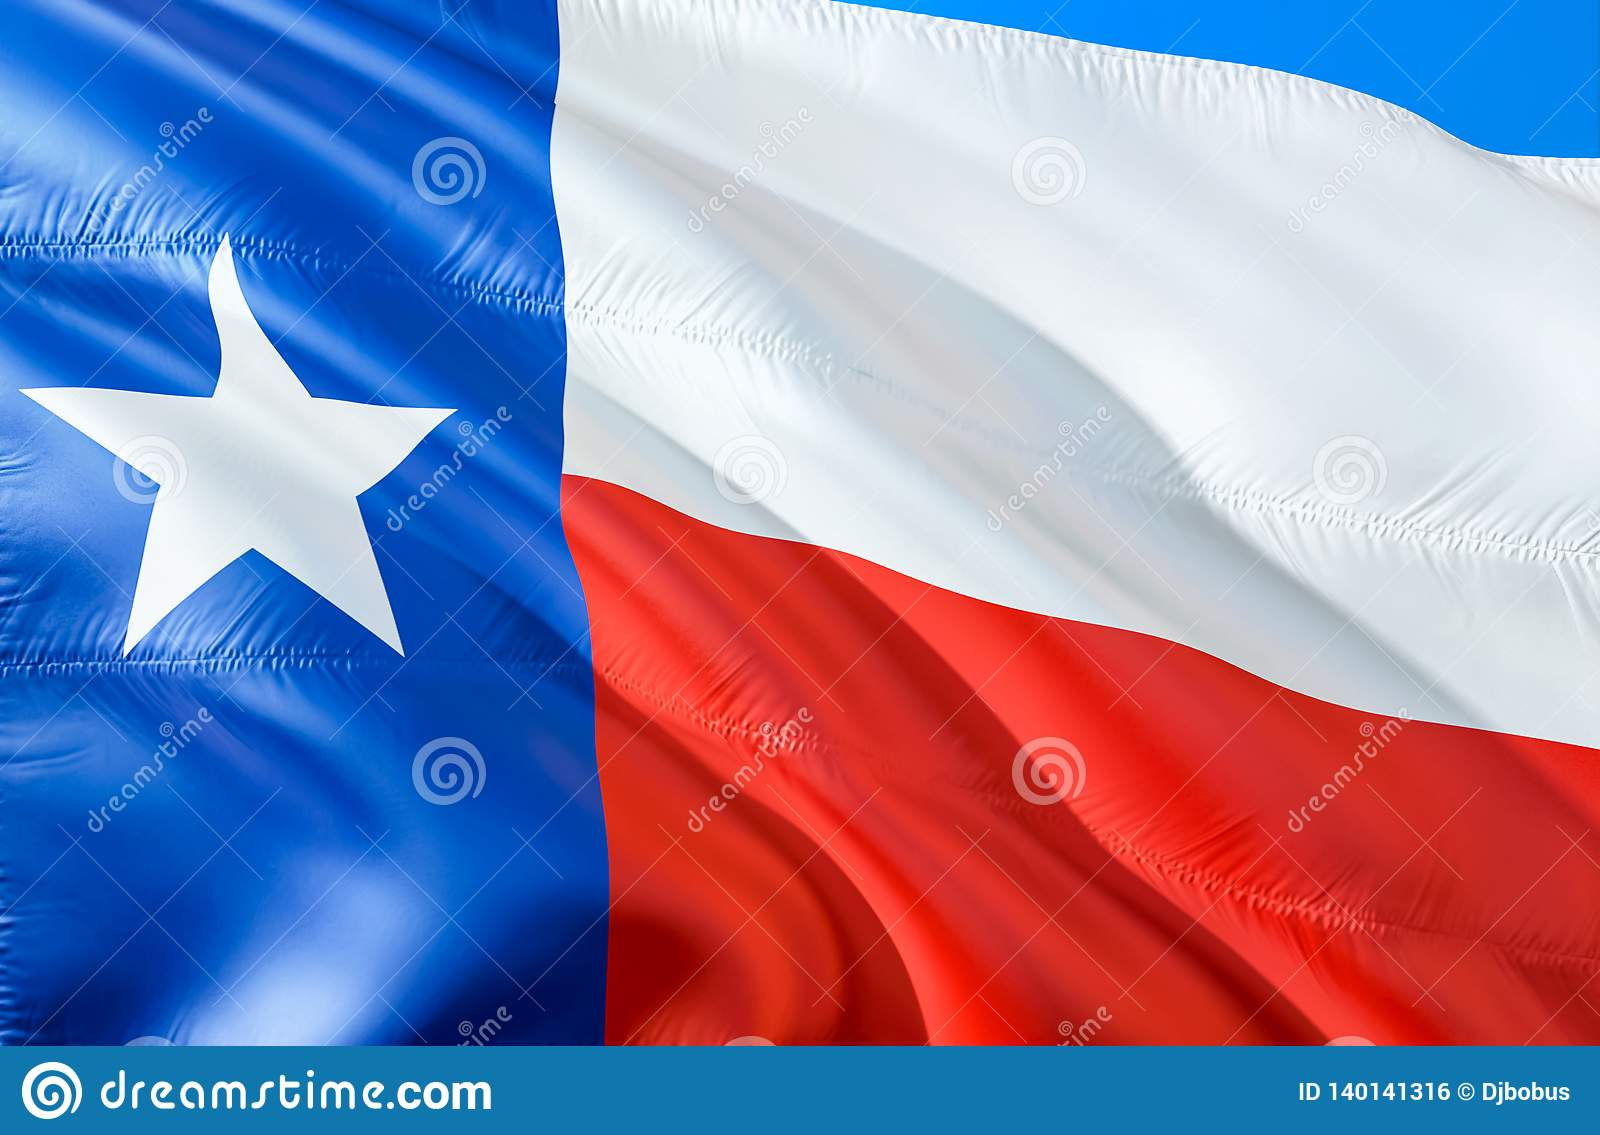 Texas flag. 3D Waving USA state flag design. The national US symbol of Texas state, 3D rendering. National colors and National